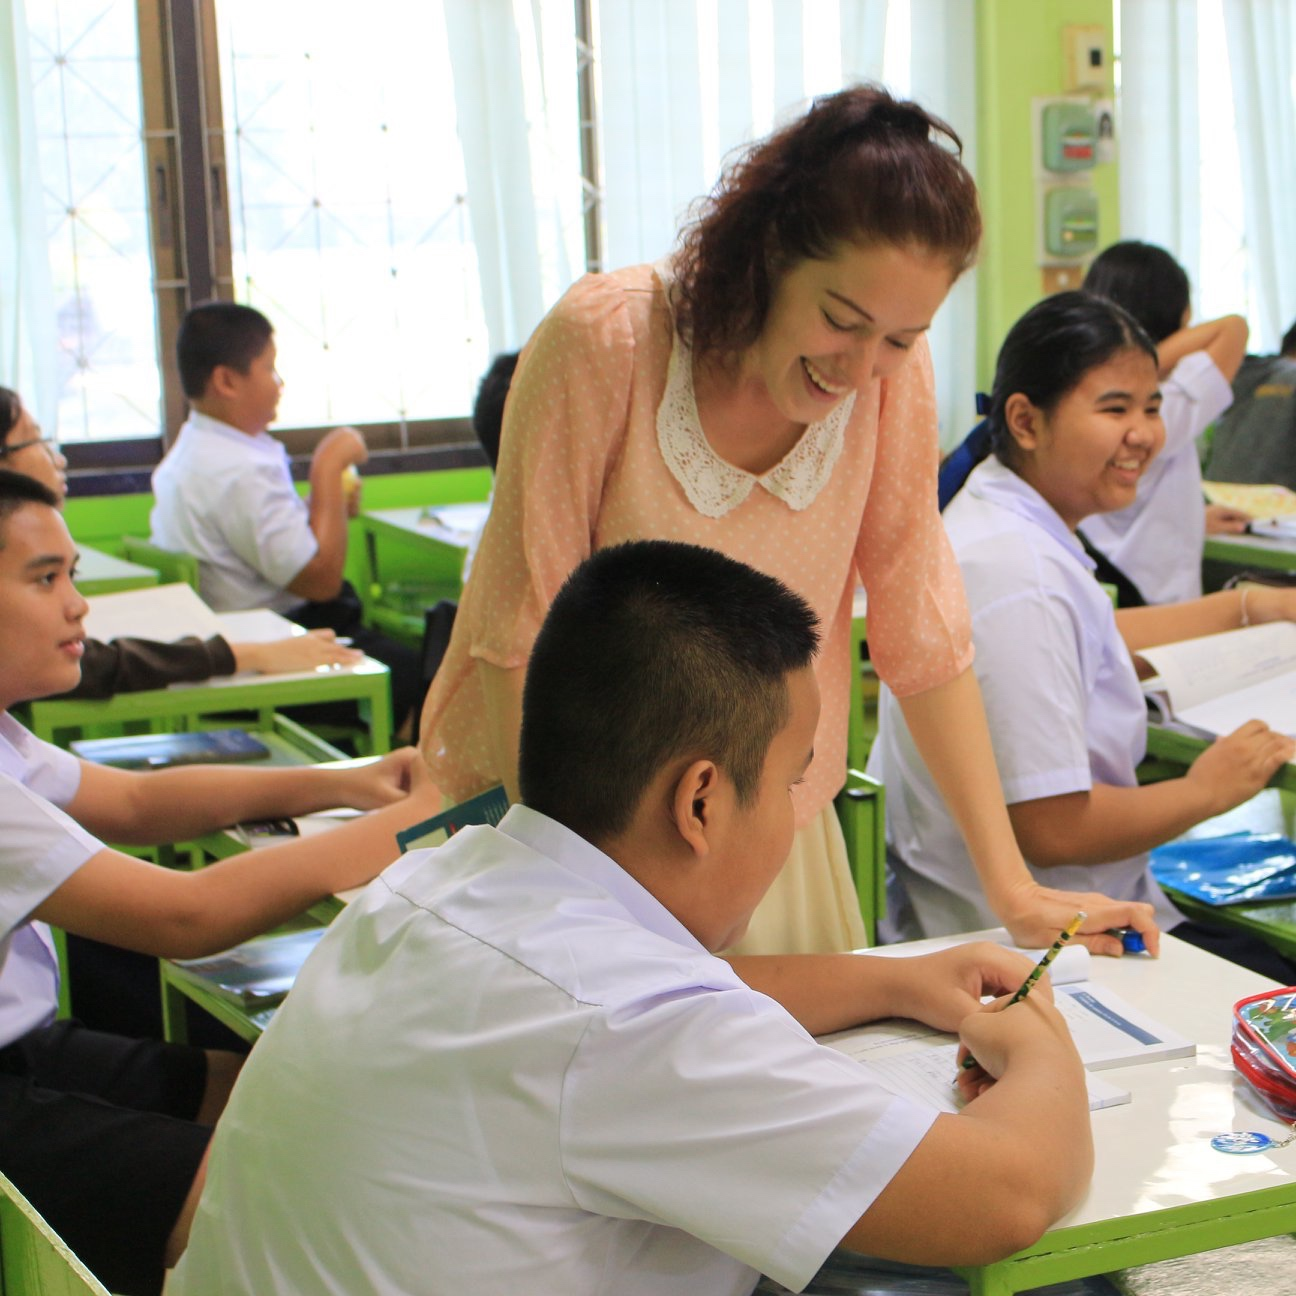 ENGLISH PROGRAM TEACHER (EP) - Also known as EP, is a program designed to provide Prathom and Mathayom students with an academic environment of primary and secondary subjects. The EP Program primarily focuses on Math, Science and Grammar/Literature. Secondary subjects would include Social Studies, Health, Digital English and ICT. This program provides students with a complete English environment refining their listening, speaking, reading and writing skills and applying these skills in real-world situations.